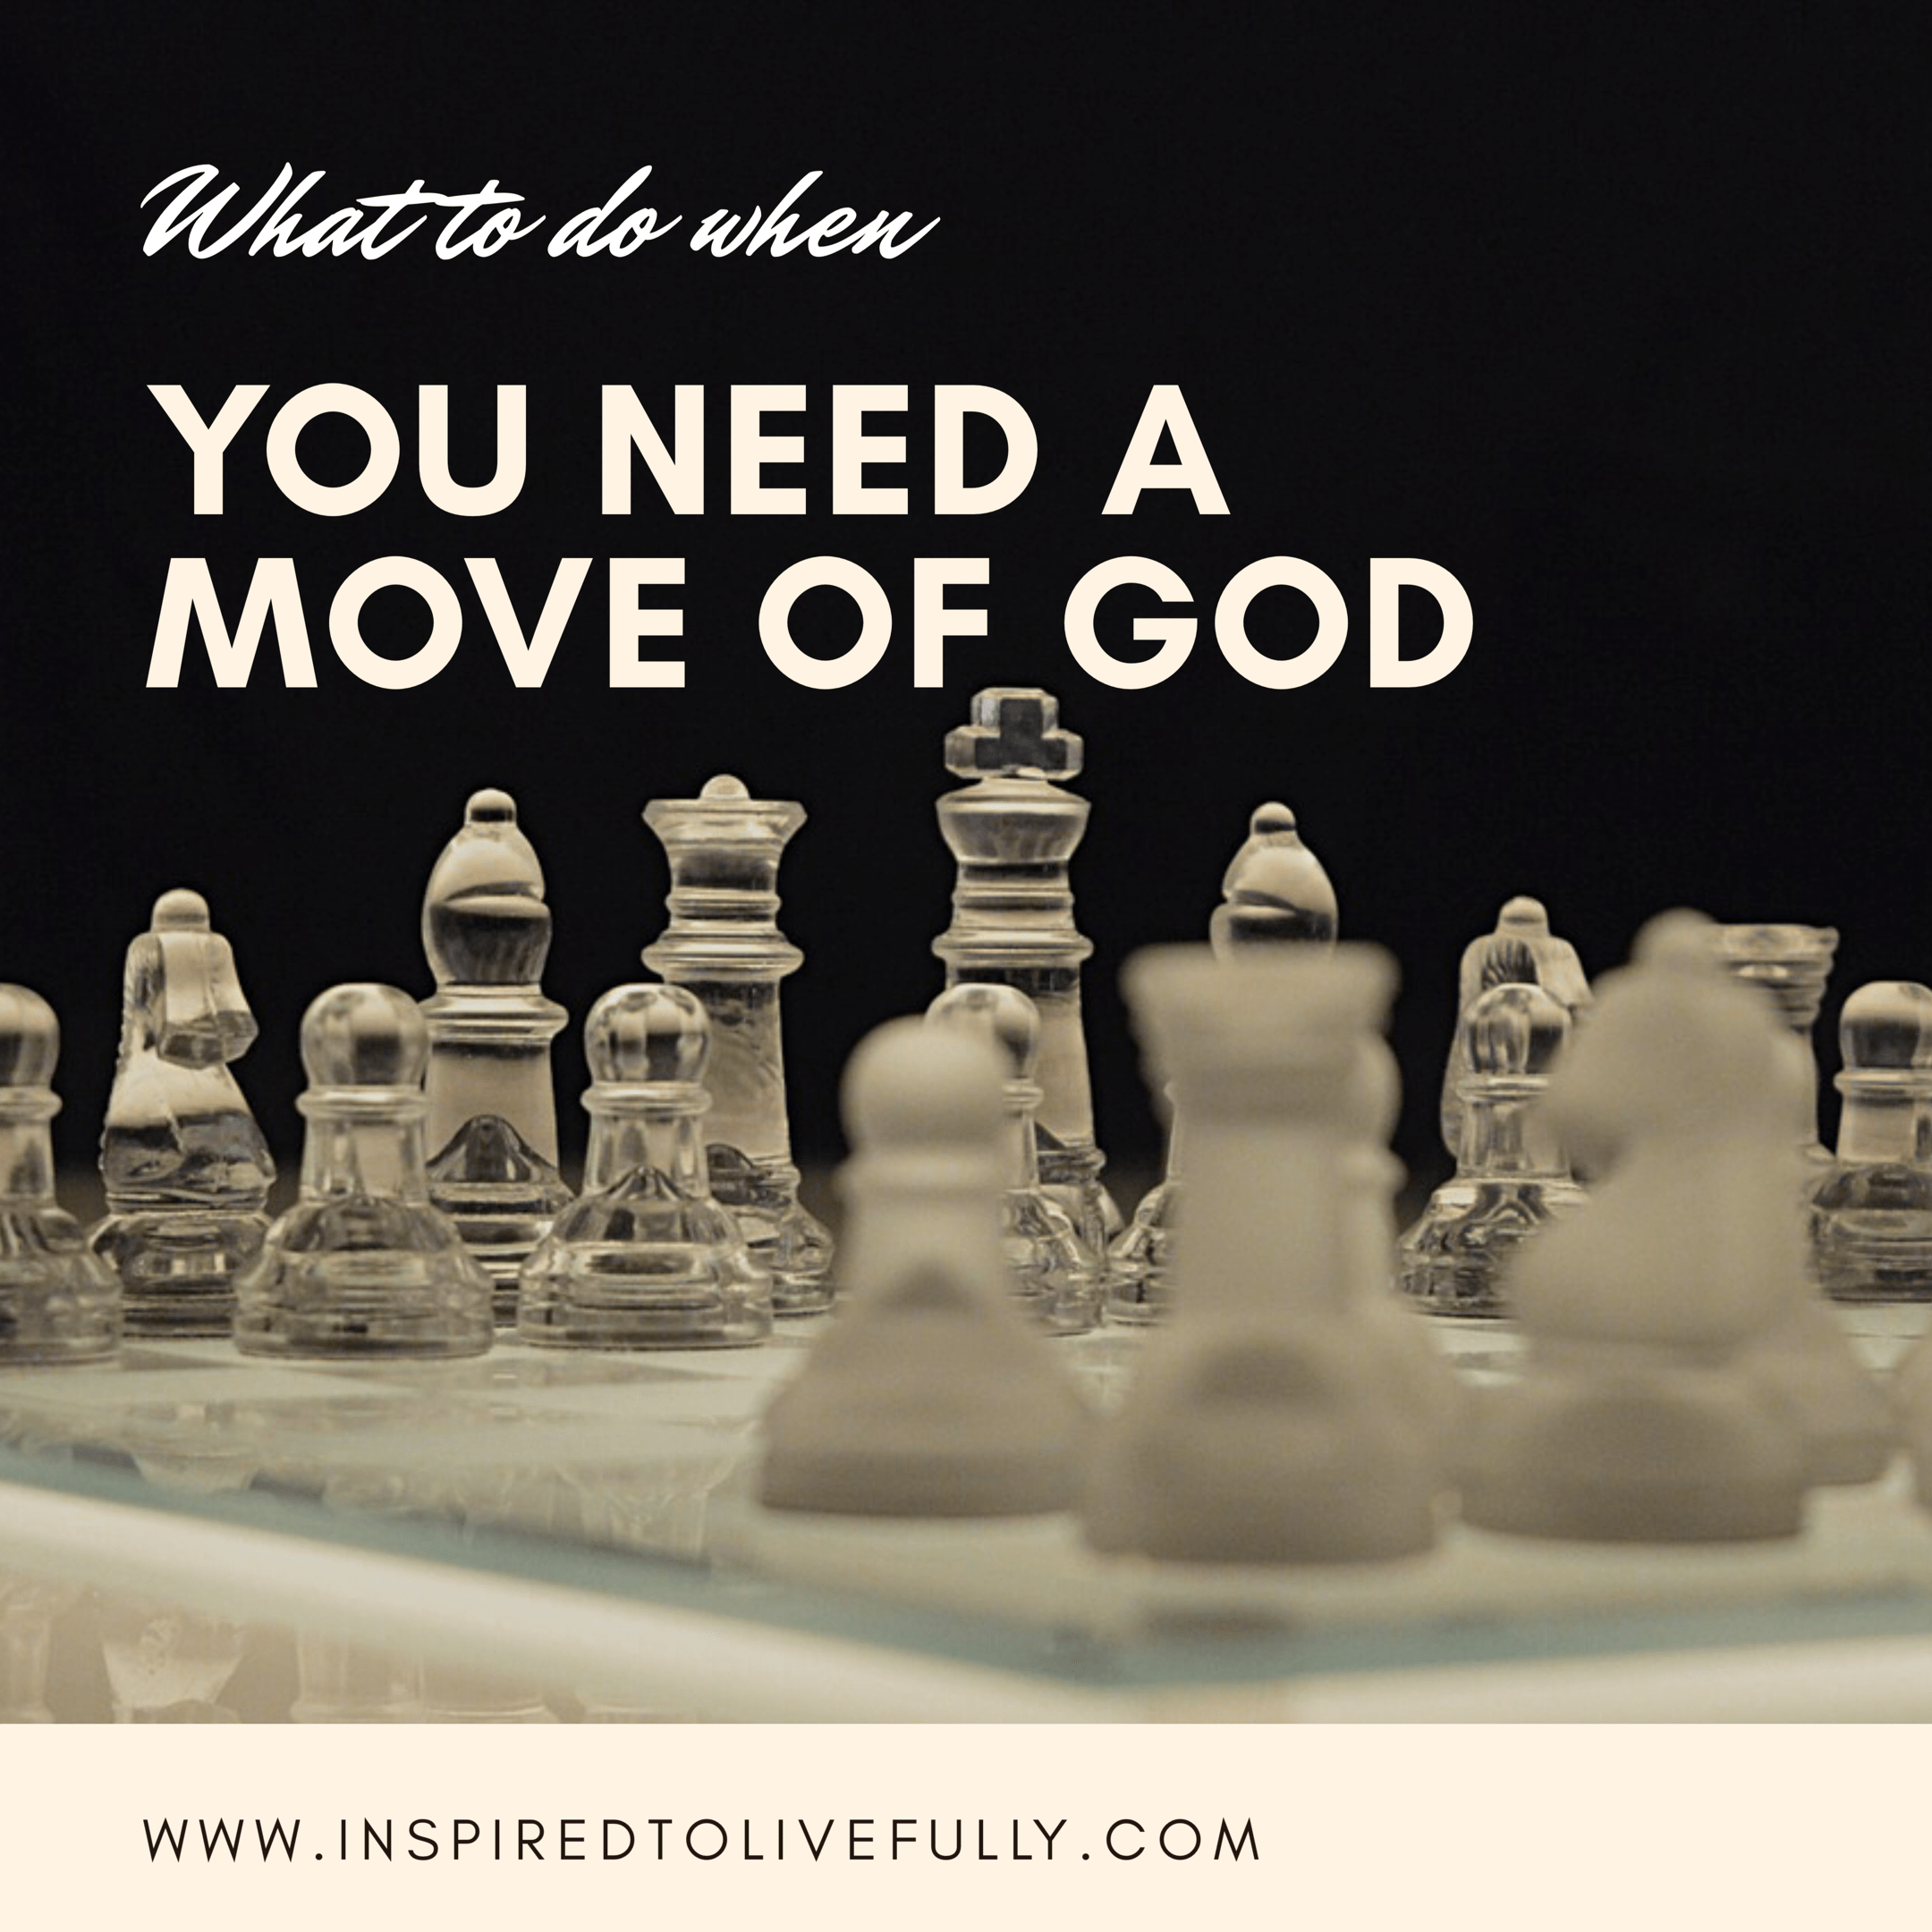 What To Do When You Need A Move of God | Inspired Life